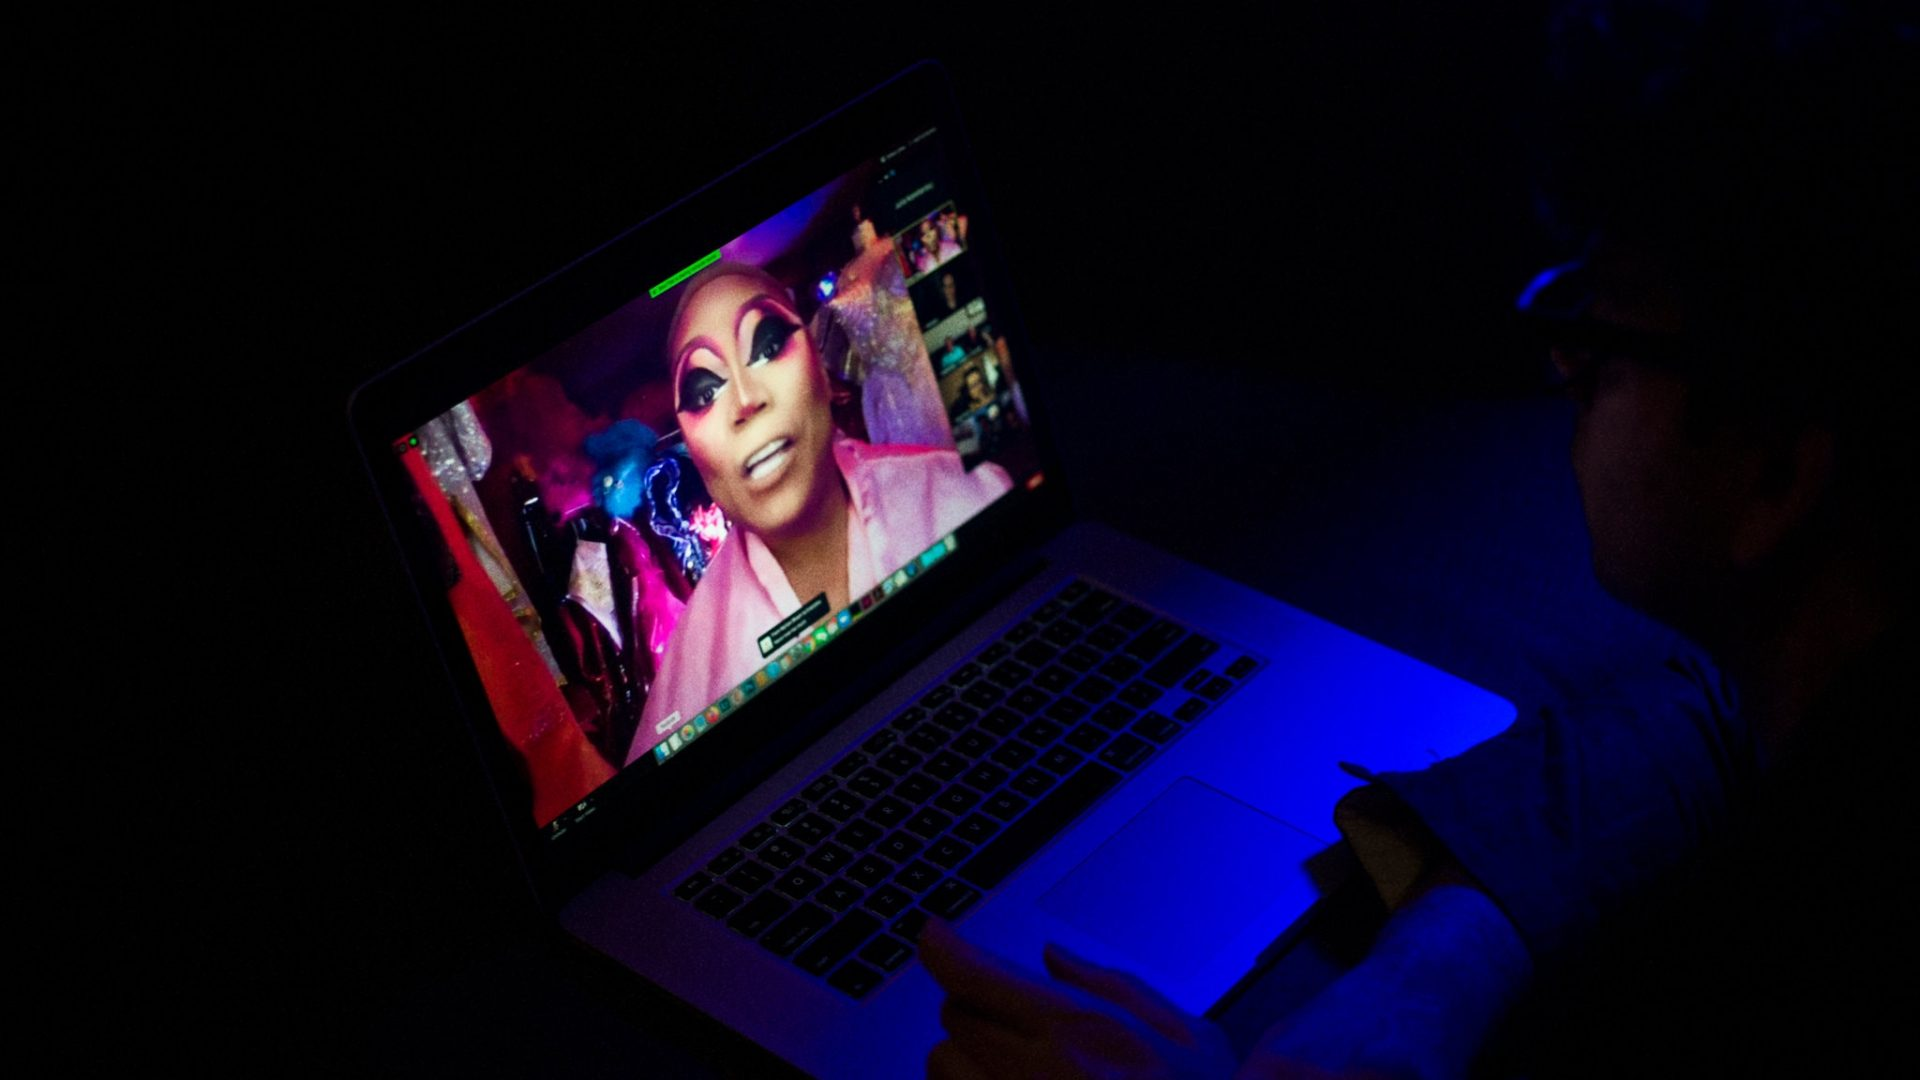 """Eschaton - The drag queen Brita Filter was a celebrity guest in one """"room.""""Credit Ioulex for The New York Times."""